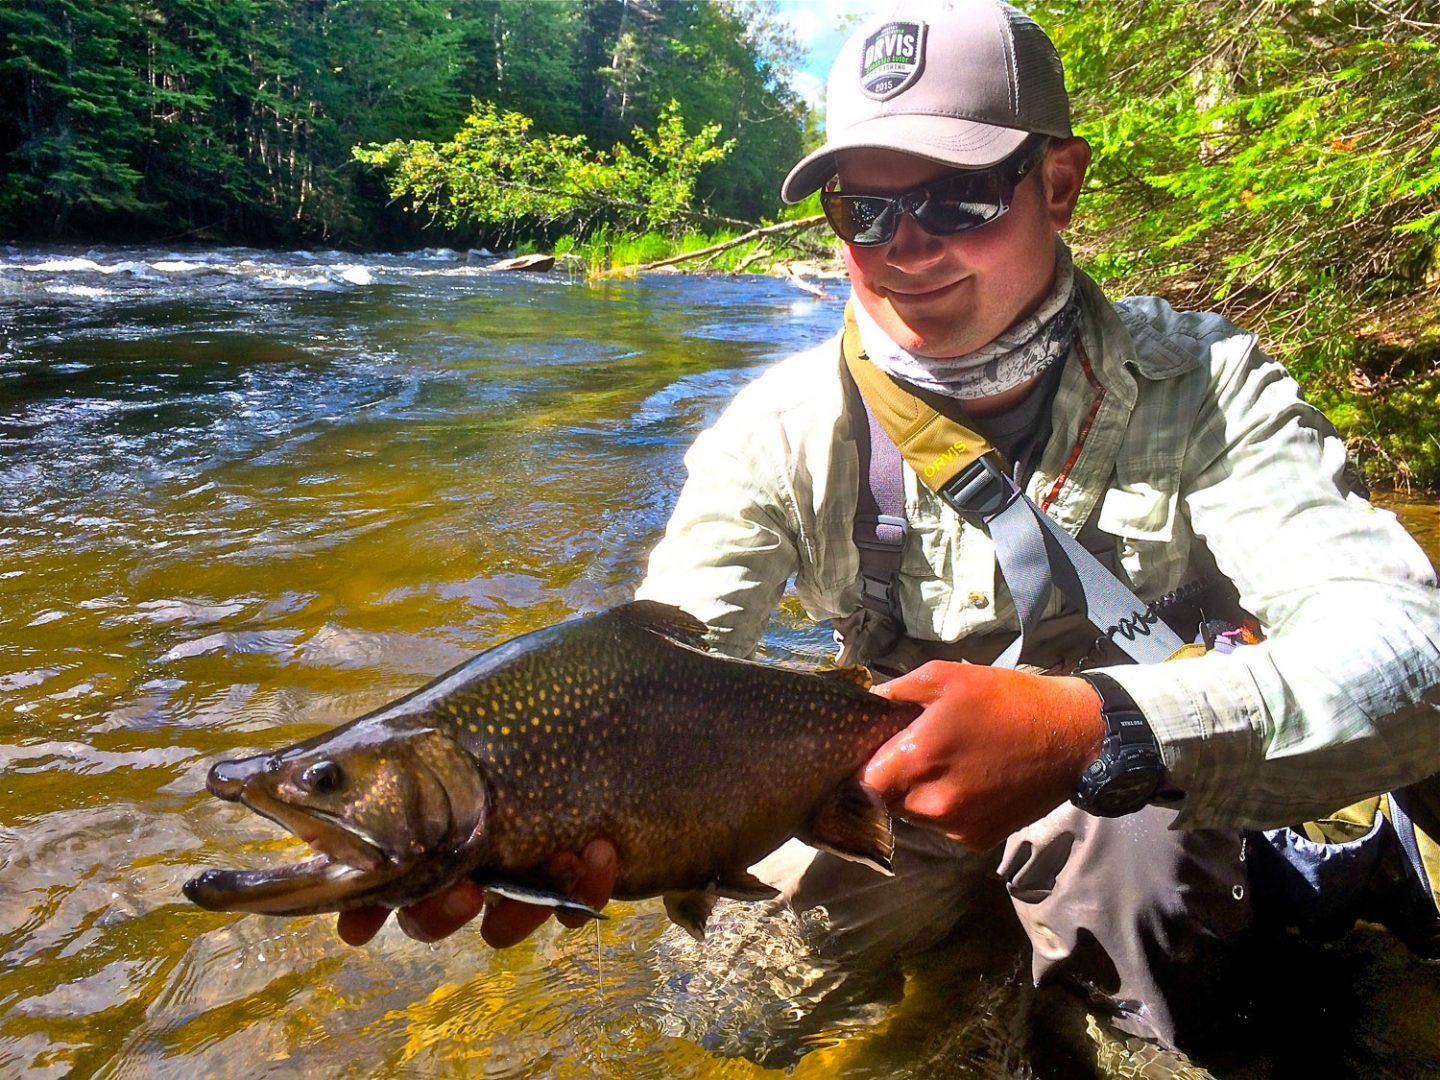 Greg Inglis with a large Brook Trout